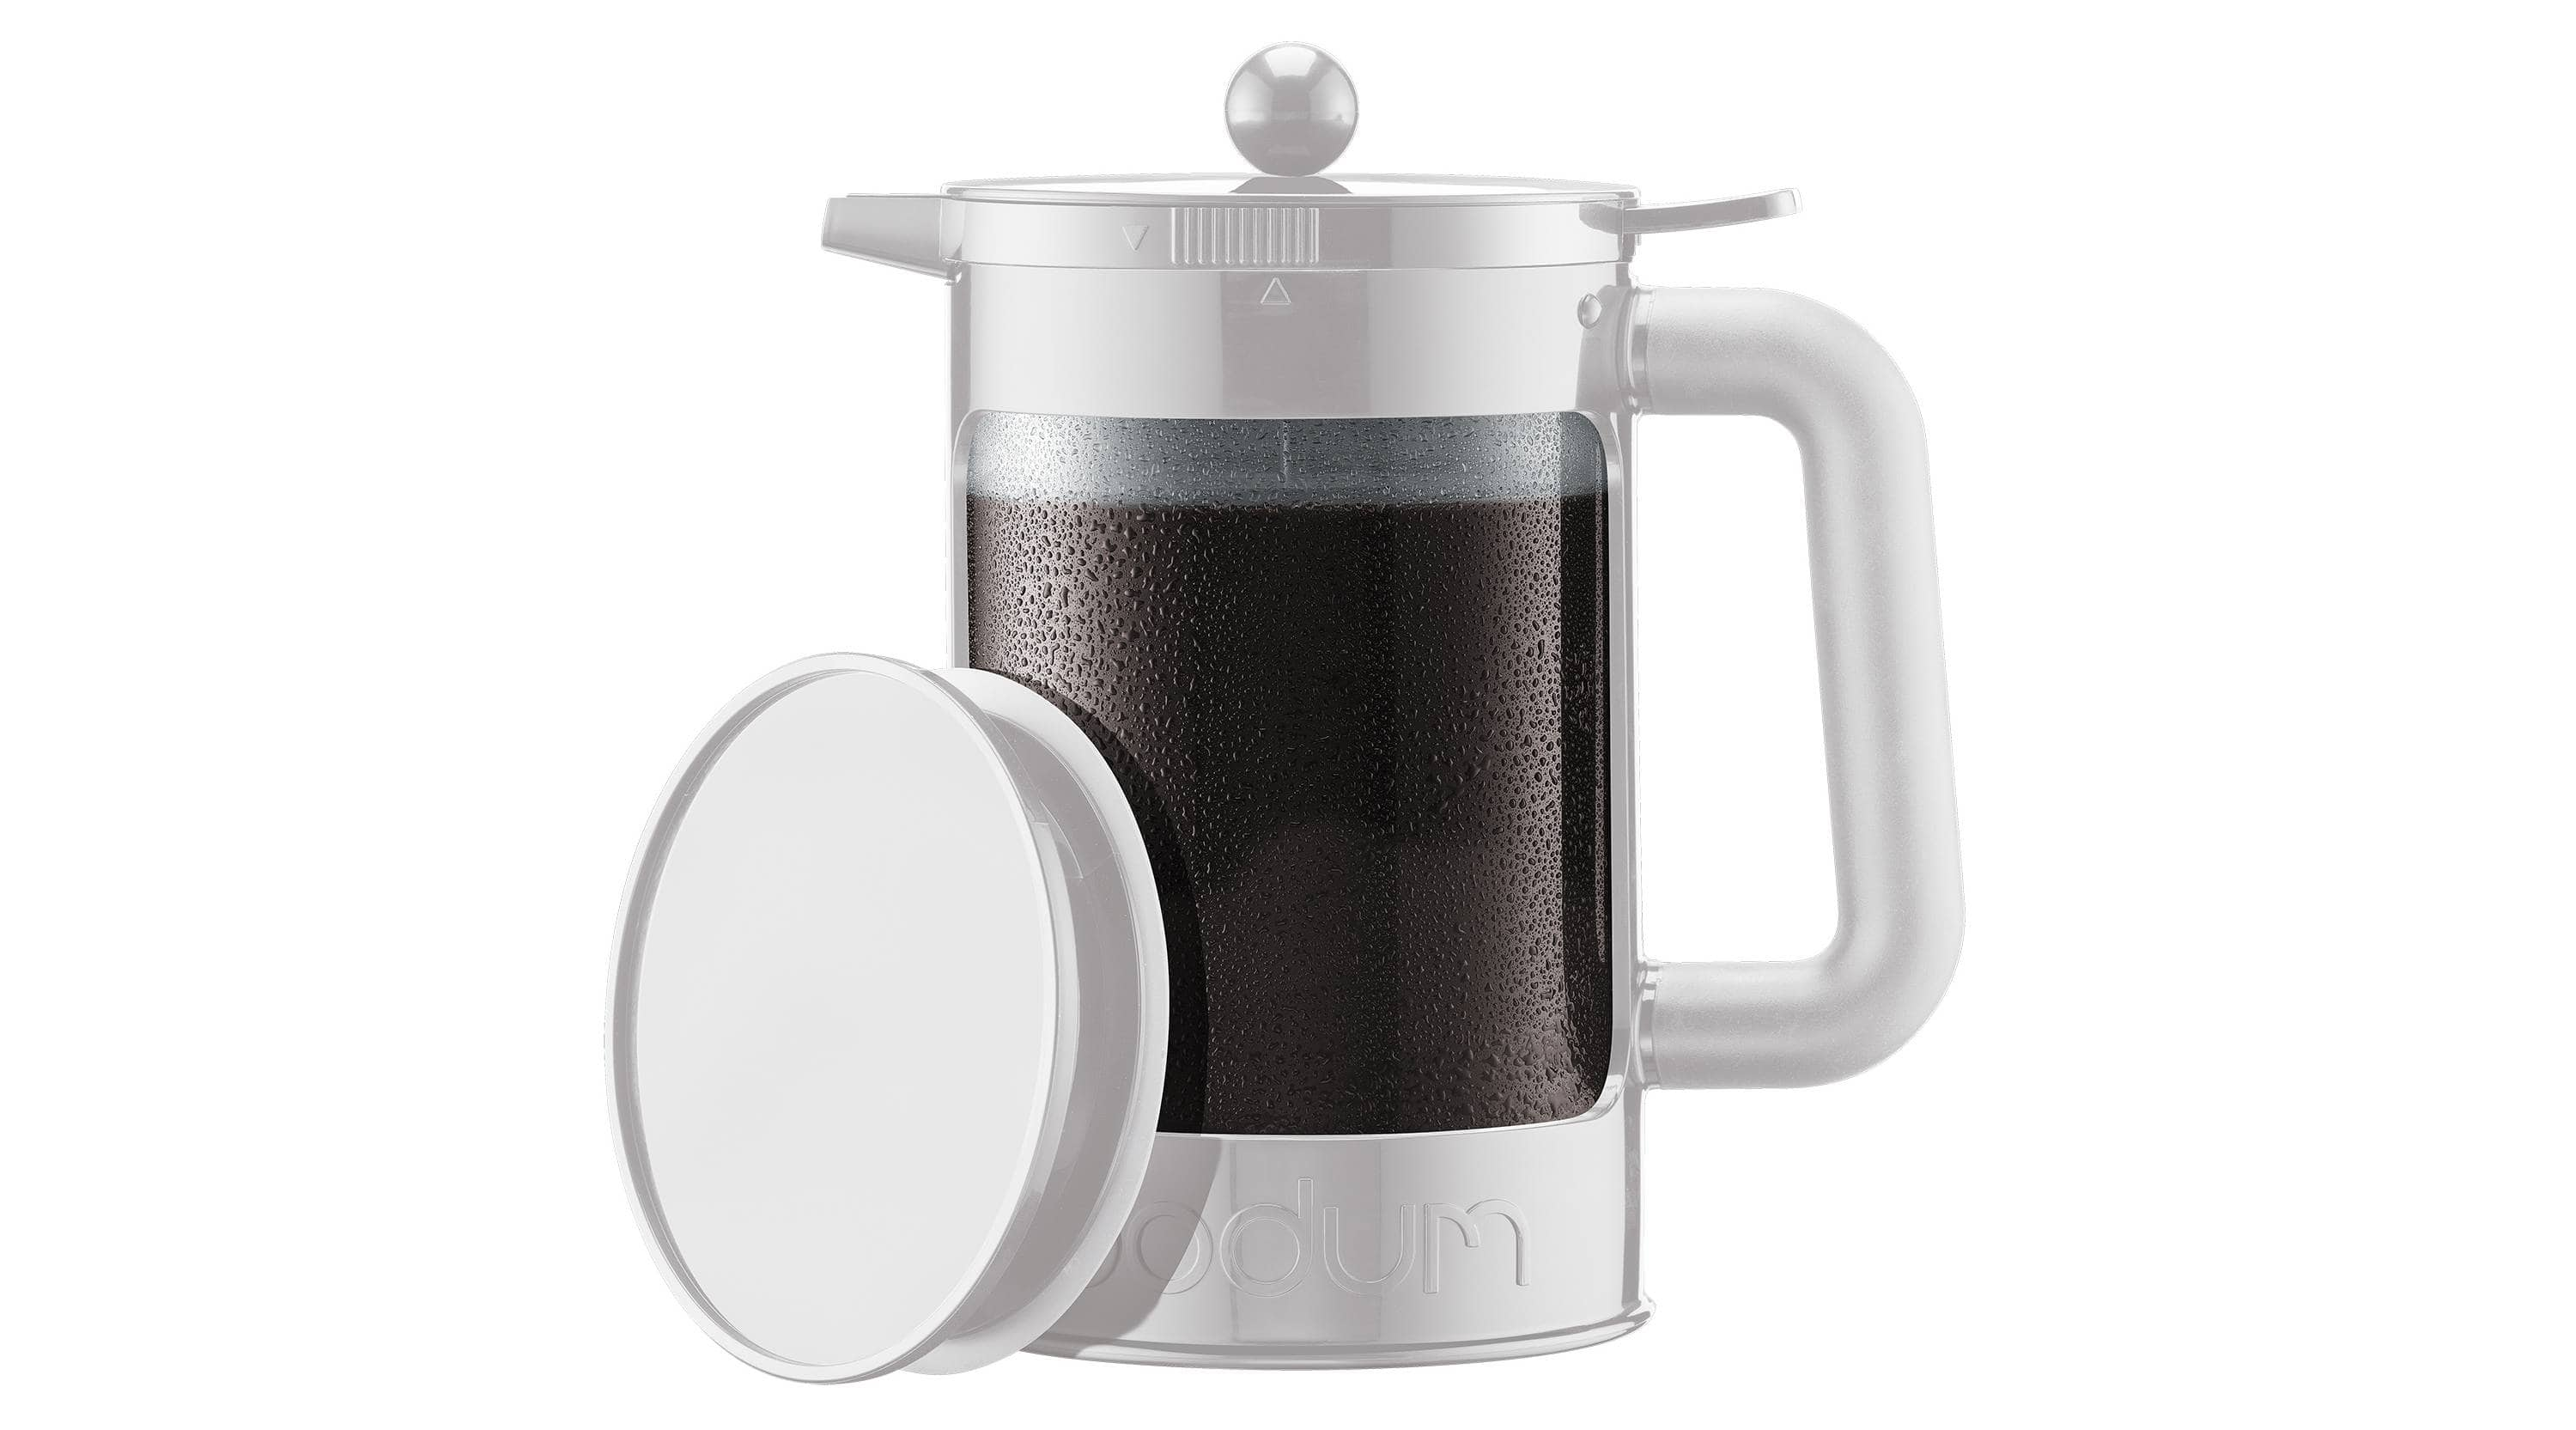 Bodum Bean Cold Brew Coffee Maker 12 Cup 51 oz - White - $13.49 & free shipping!